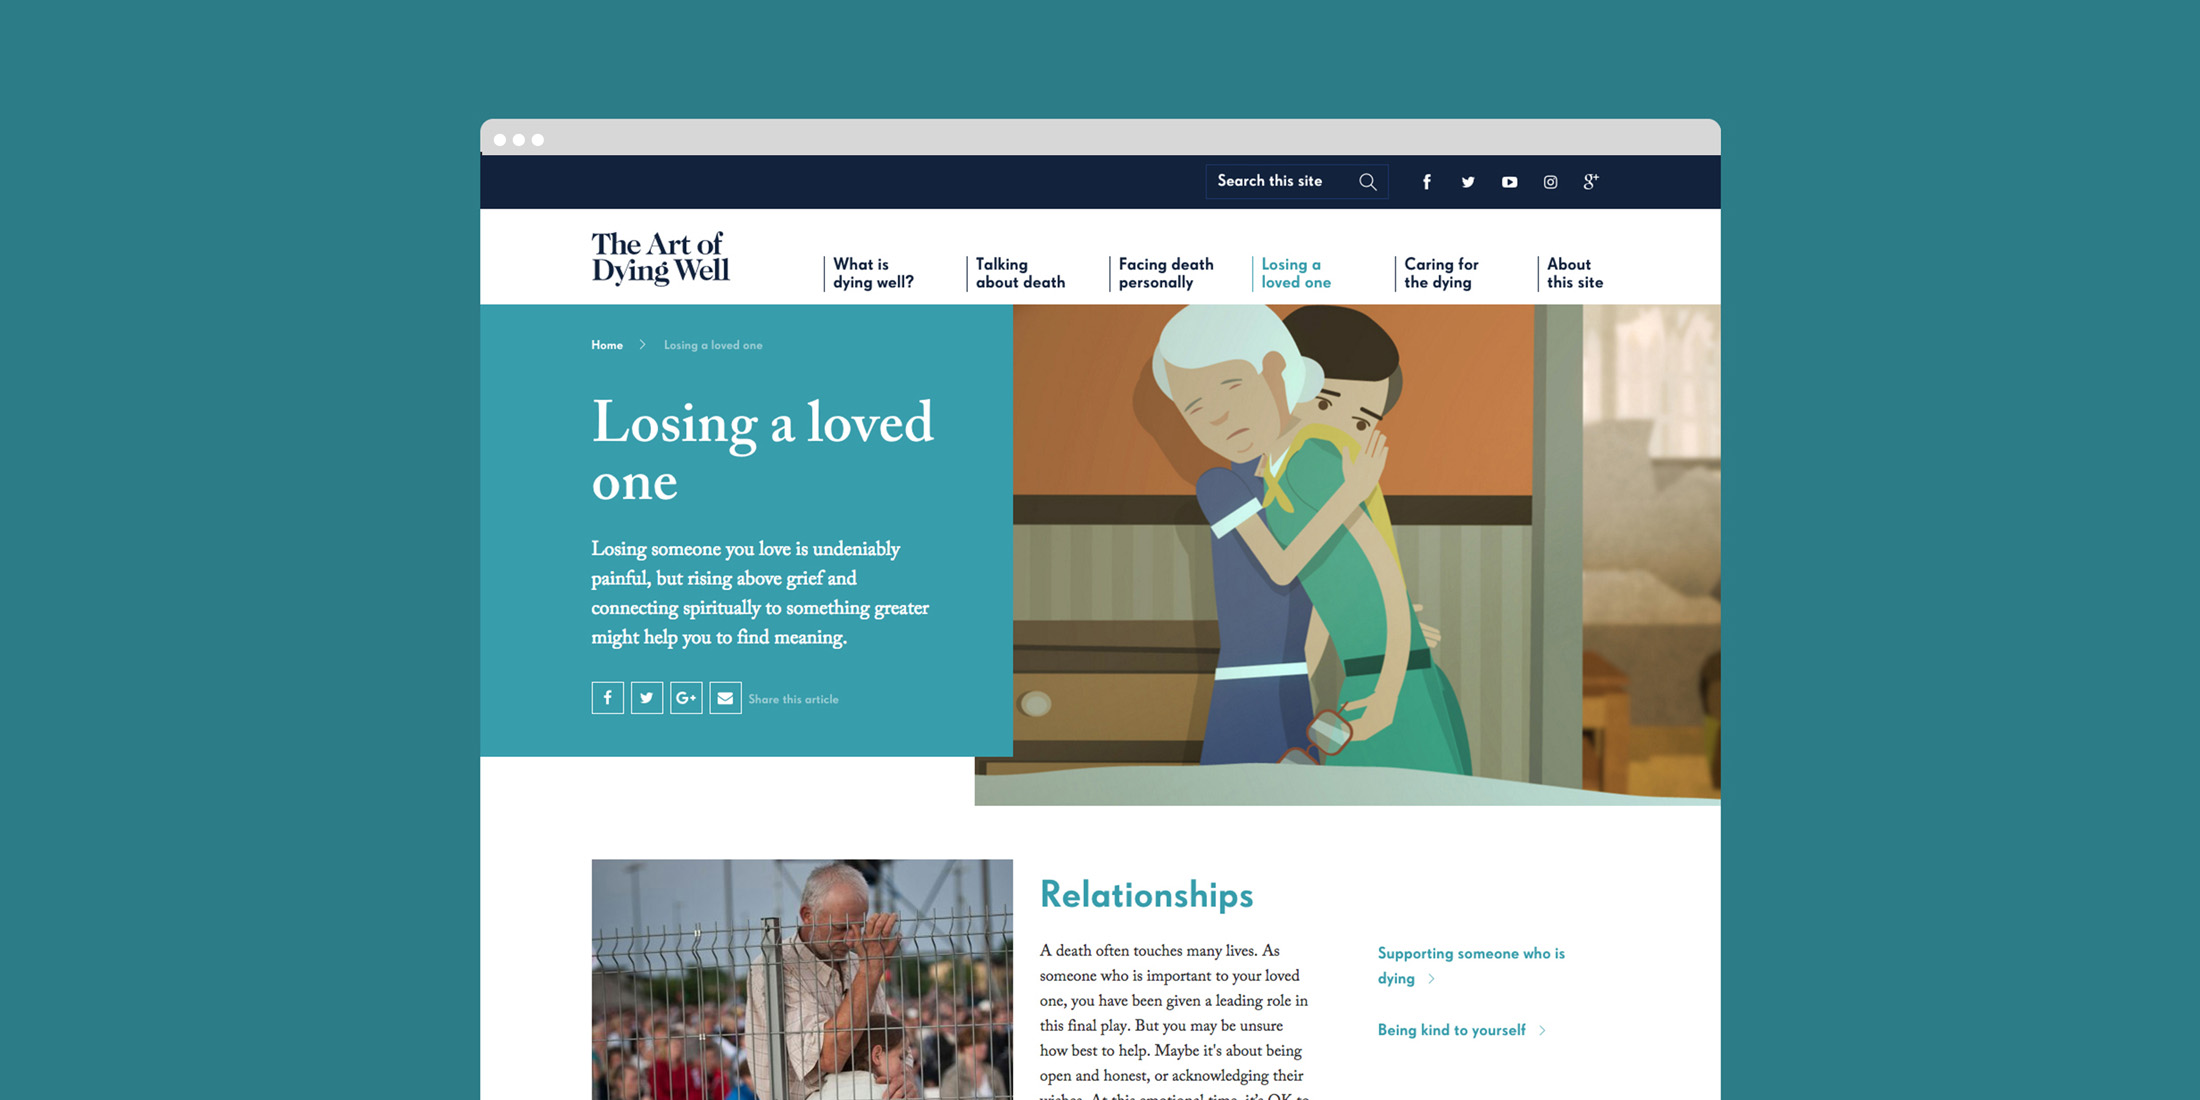 The Art of Dying Well landing page